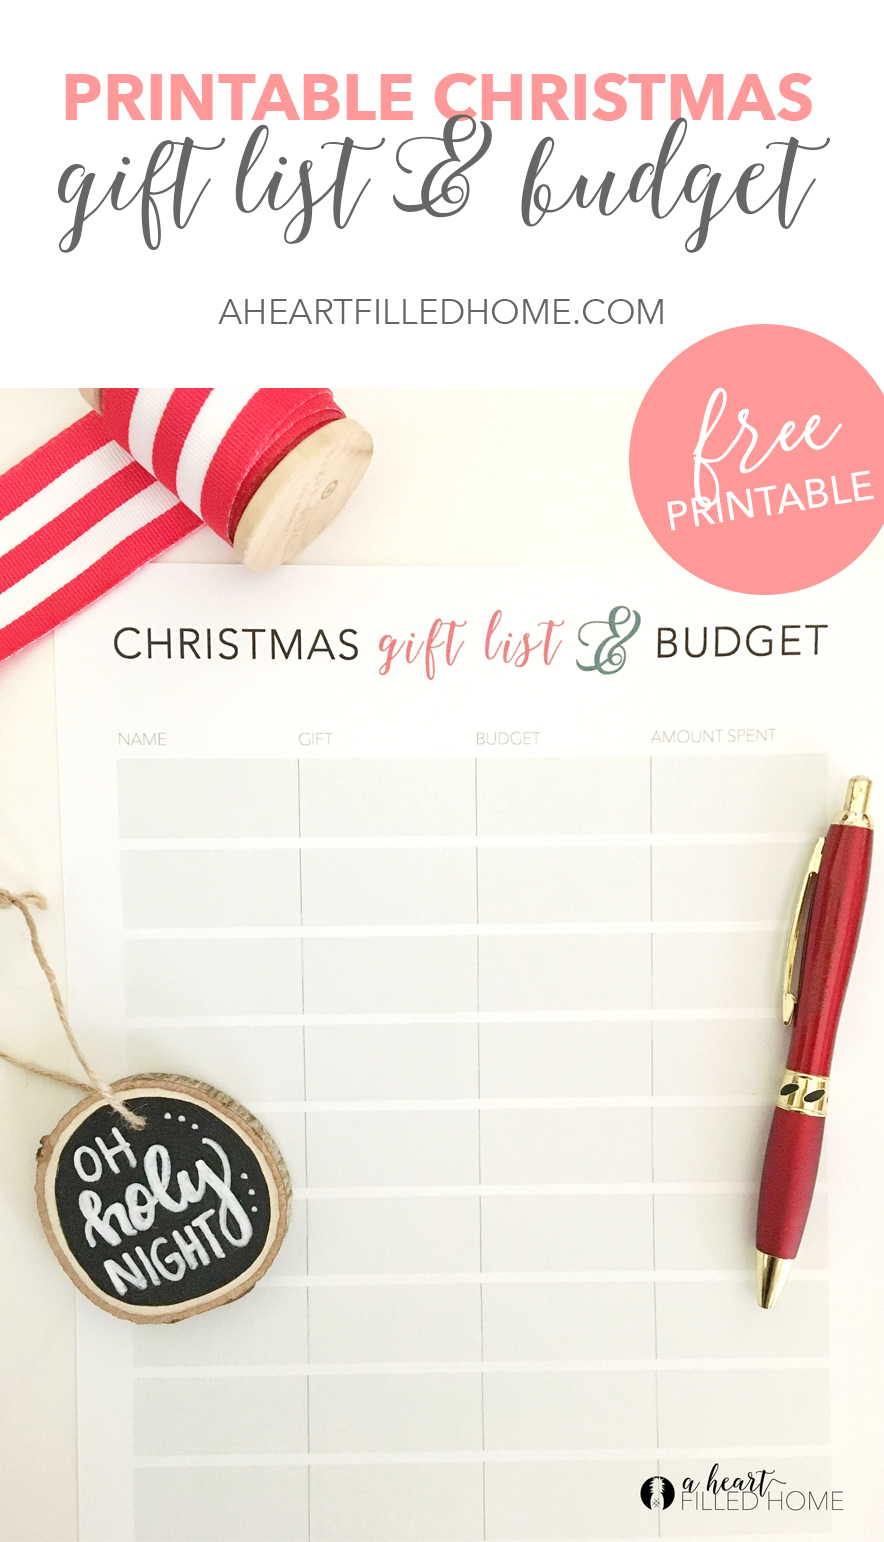 Christmas Gift List & Budget - Free Printable! Visit aheartfilledhome.com for your free printable!